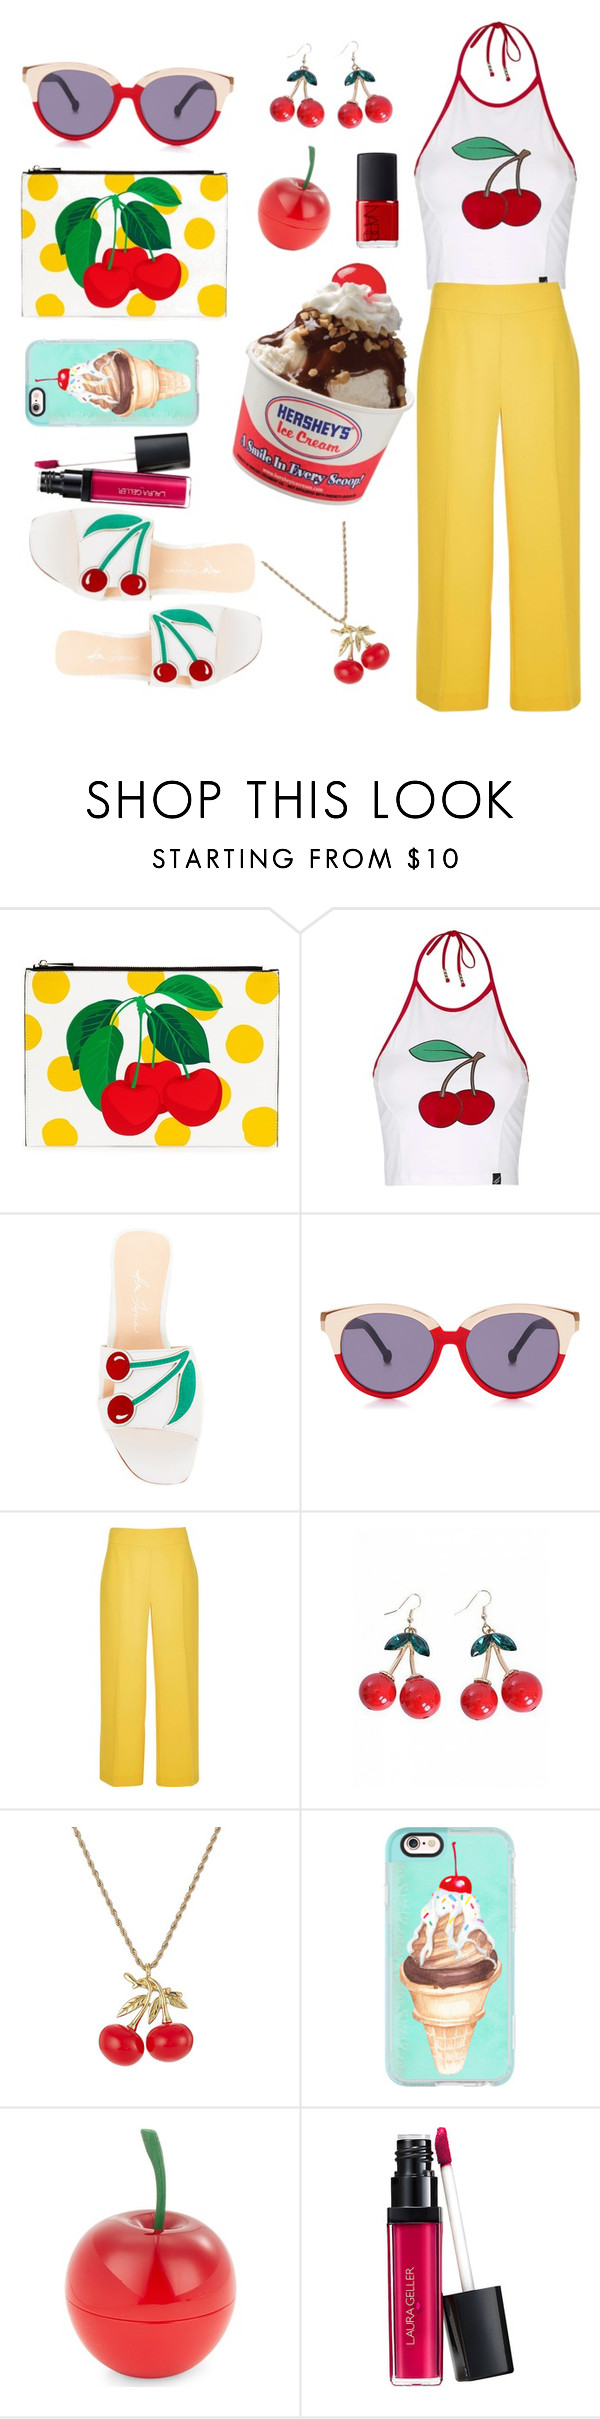 """sweet línea a cherry"" by lisa-gache ❤ liked on Polyvore featuring Topshop, Isa Tapia, Preen, River Island, Kenneth Jay Lane, Casetify, Tony Moly and NARS Cosmetics"